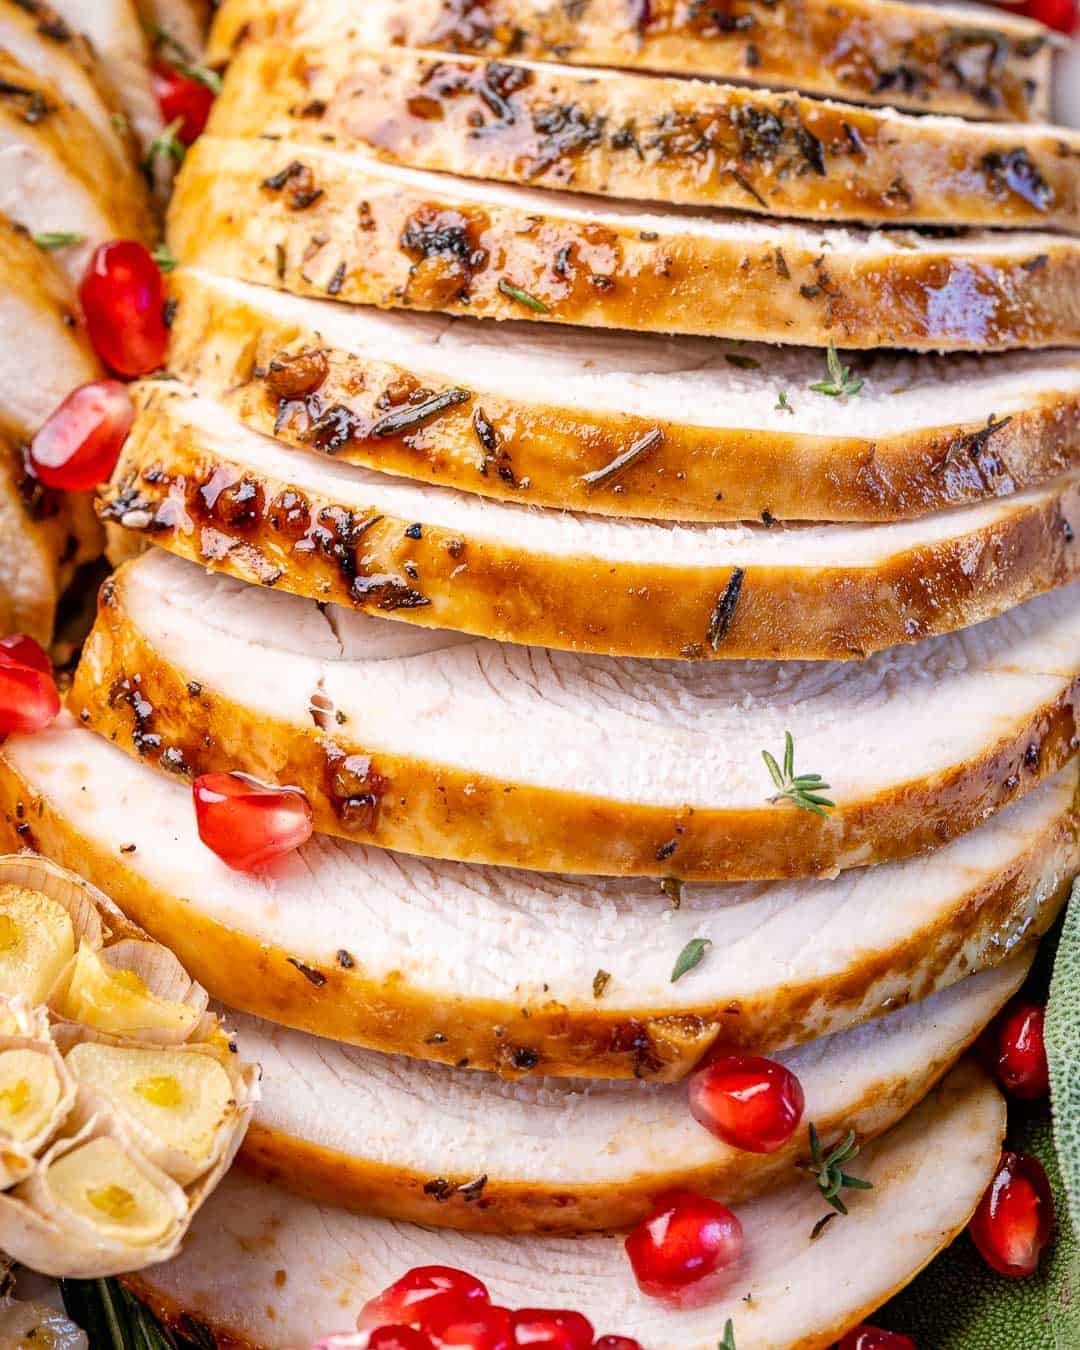 Close view of sliced turkey breast with pomegranate seeds sprinkled on top